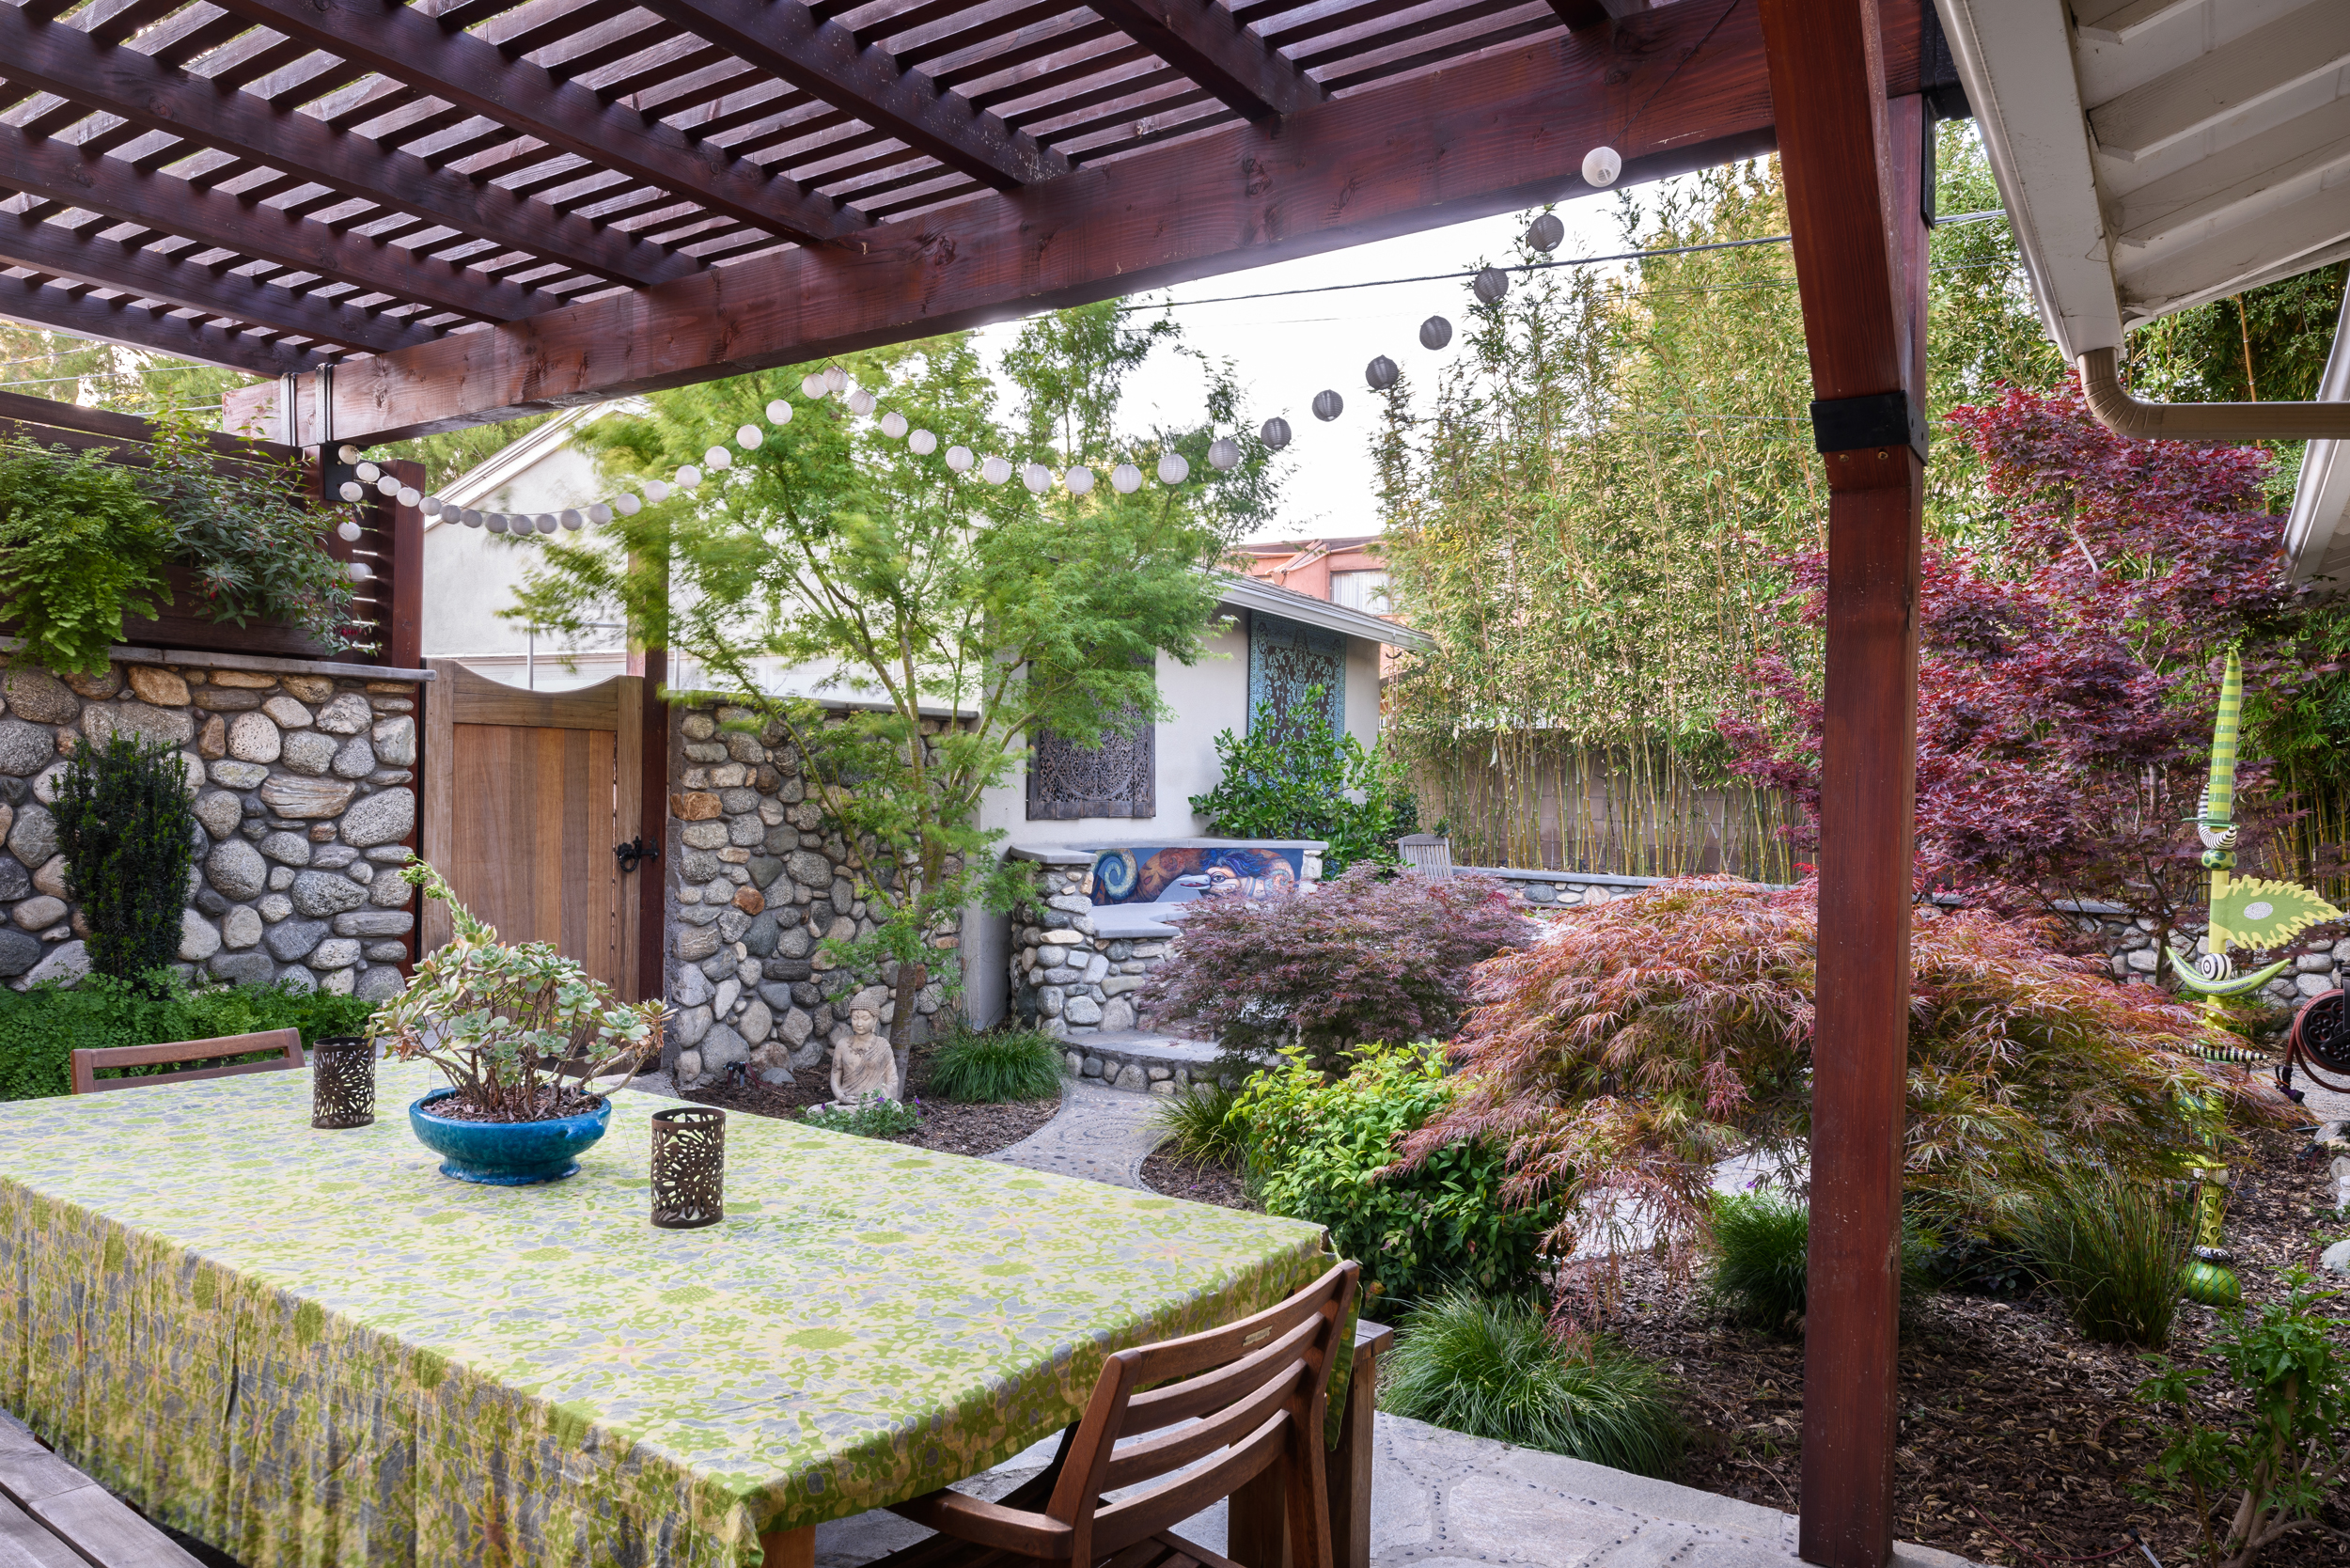 Wood pergola hand-rubbed oil finished providing for an outdoor dining area giving onto a serene Asian-inspired woodland backyard